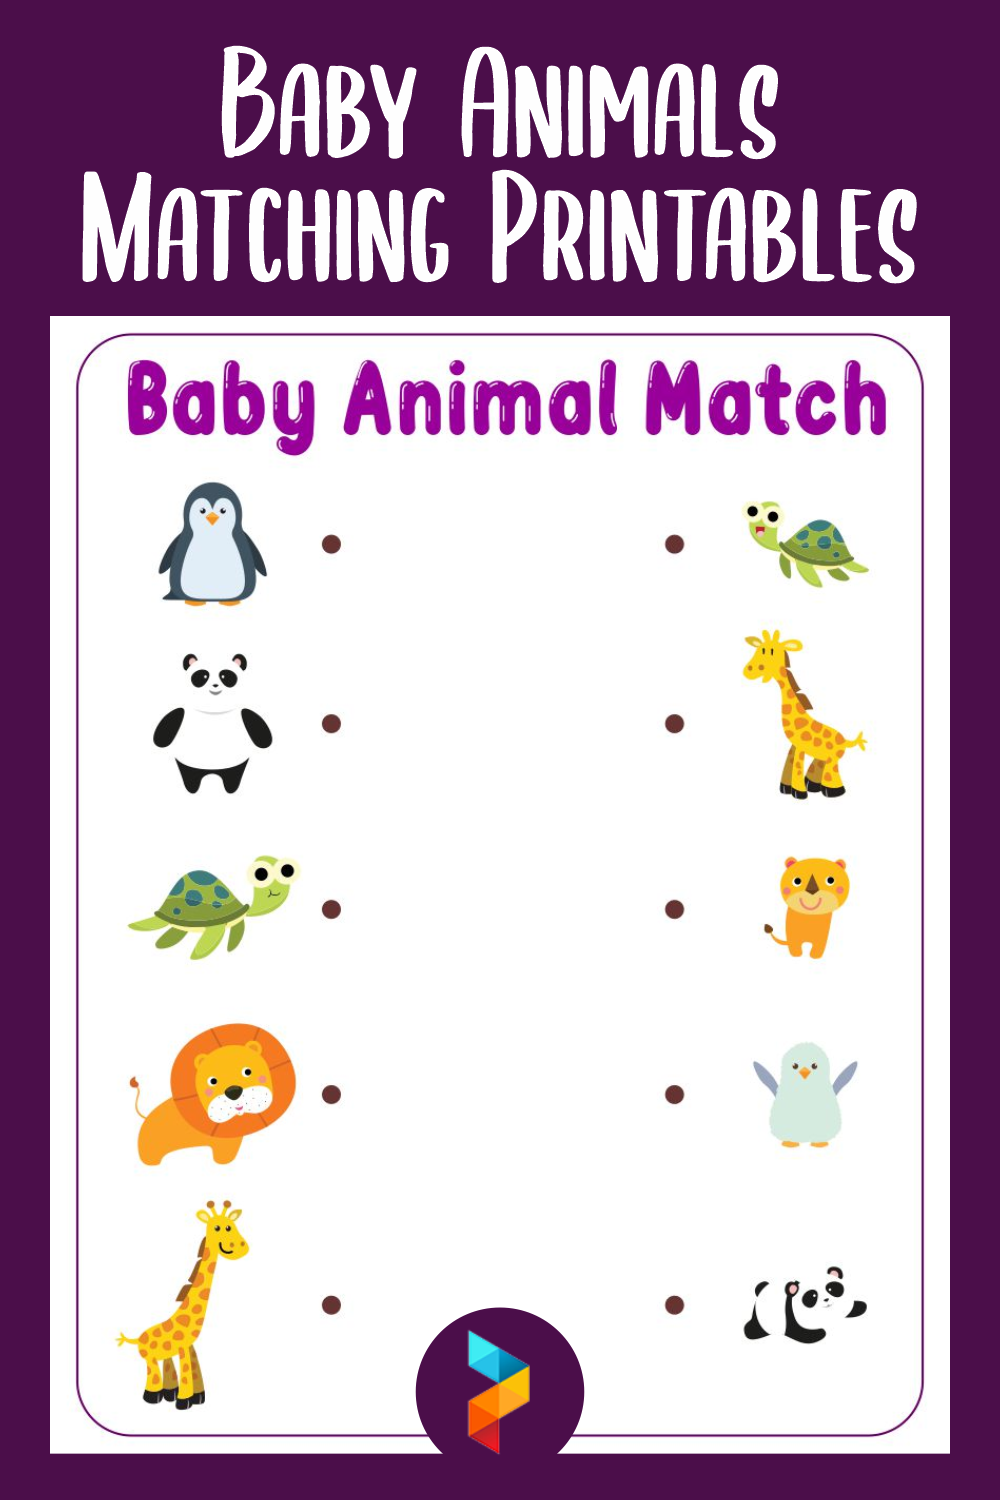 Baby Animals Matching Printables